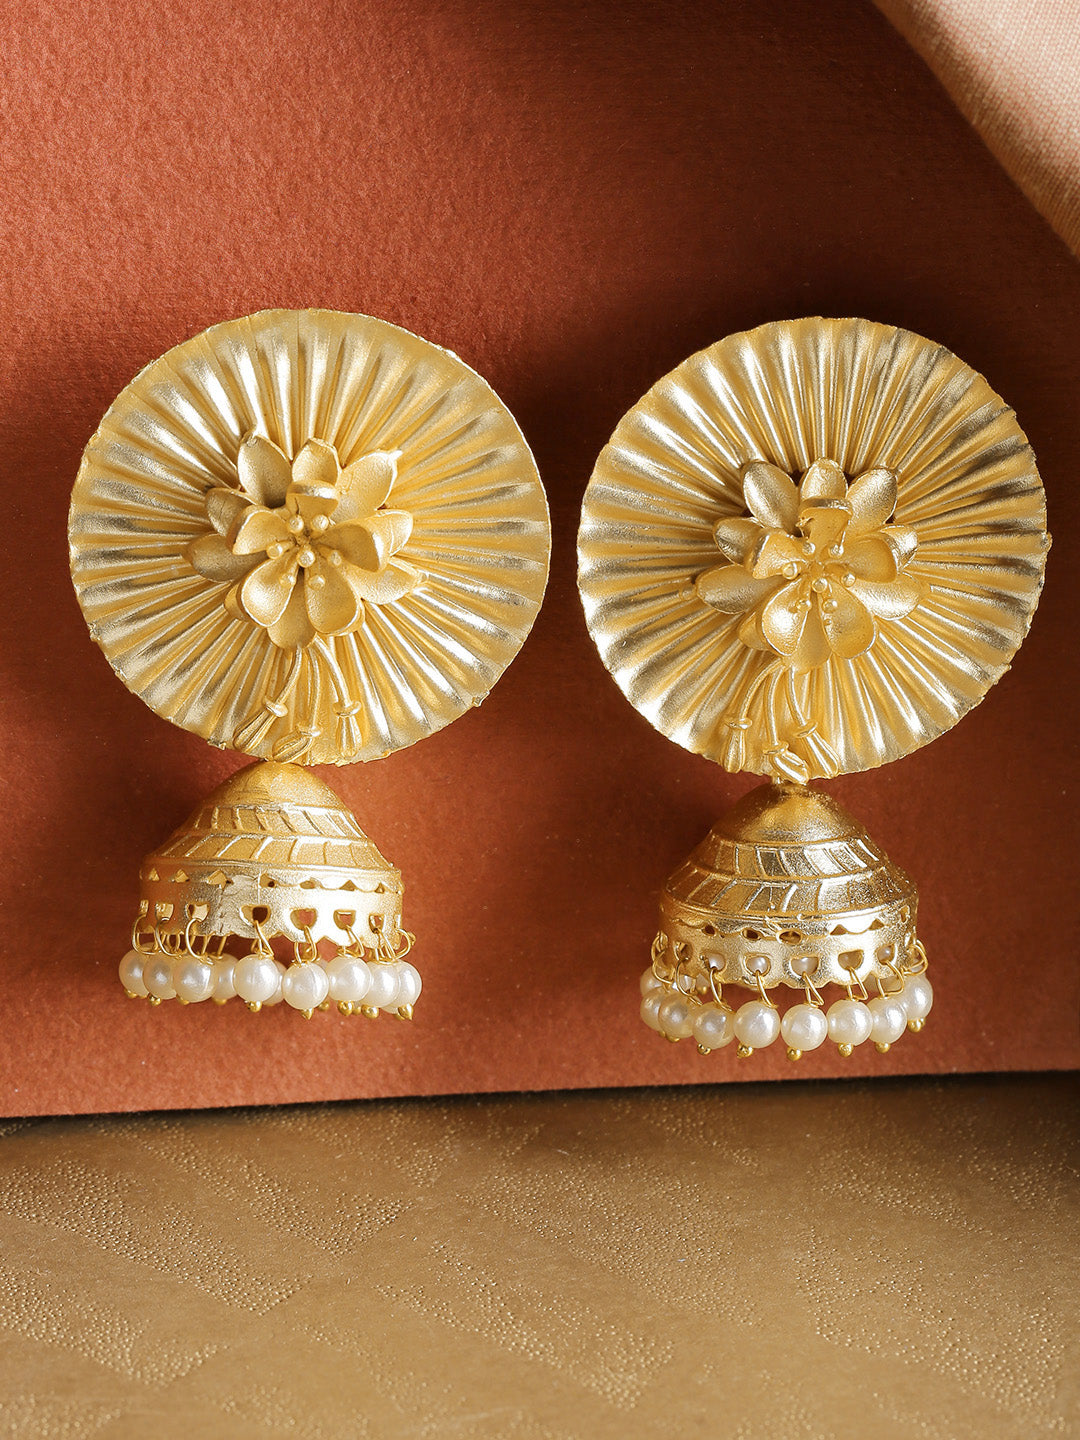 Gold-Plated Floral Patterned Jhumka Earrings with Pearls Drop